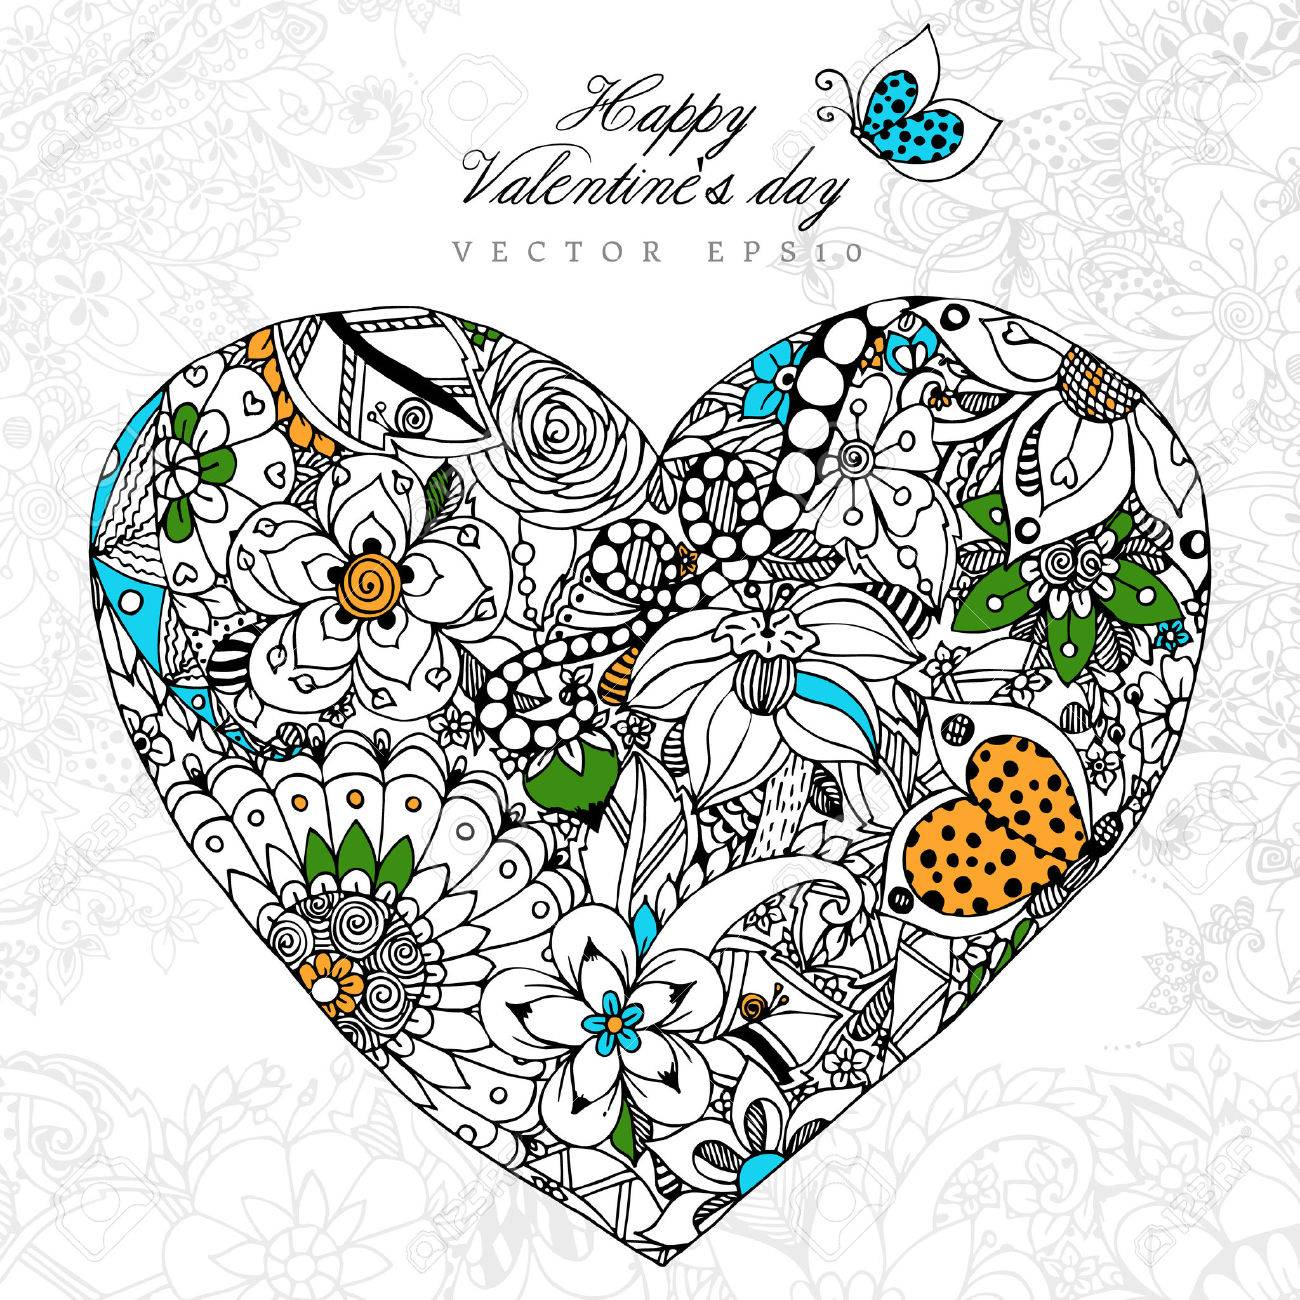 Vektor-Illustration Grußkarte Happy Valentine Day Heart, Dudling ...